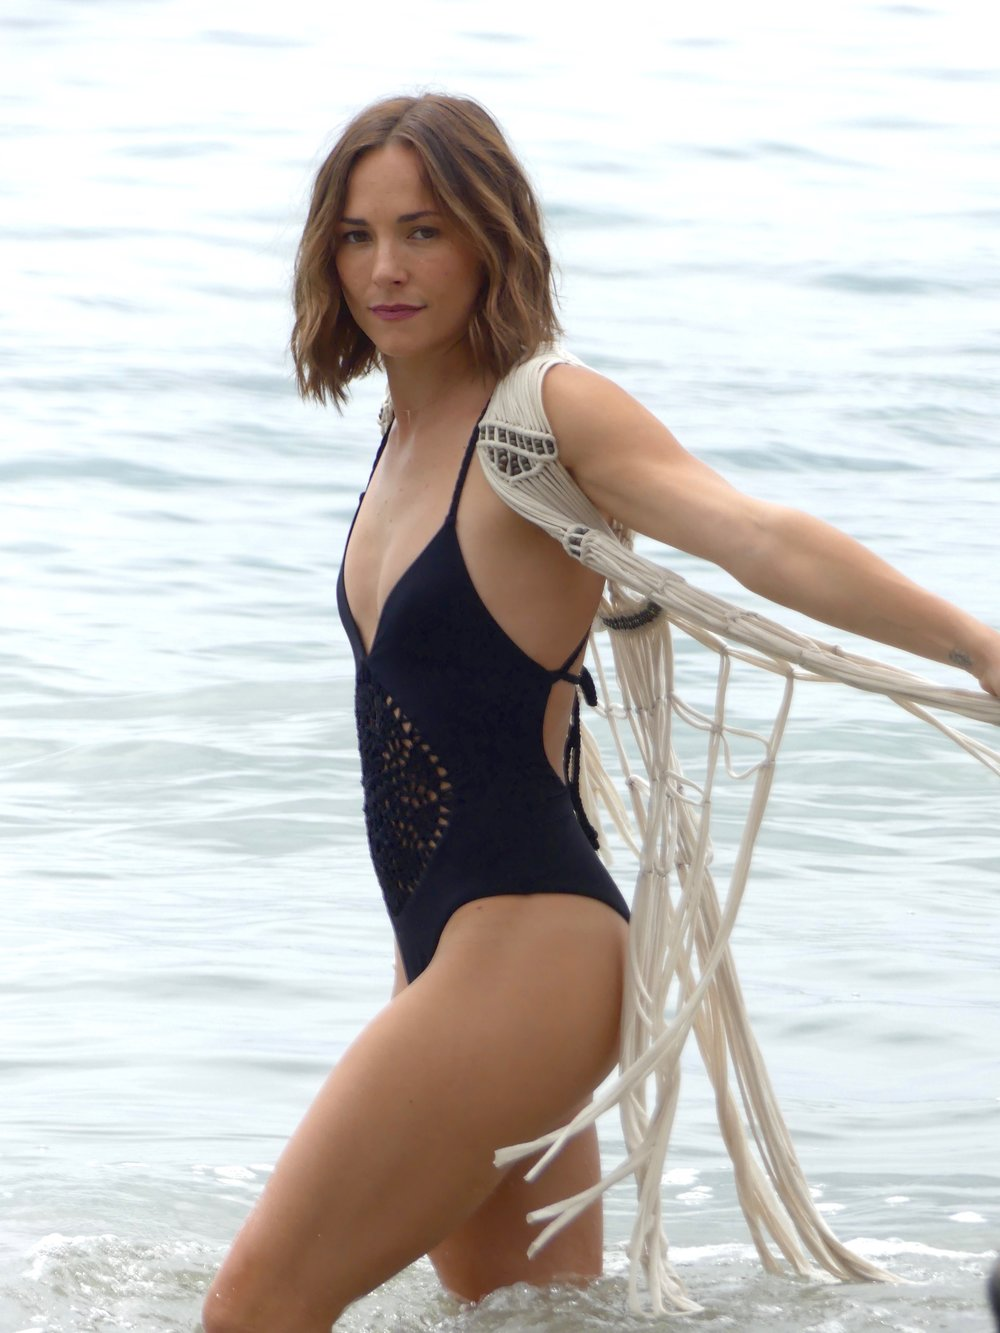 Images Brianna Evigan nudes (14 photos), Ass, Cleavage, Boobs, swimsuit 2018